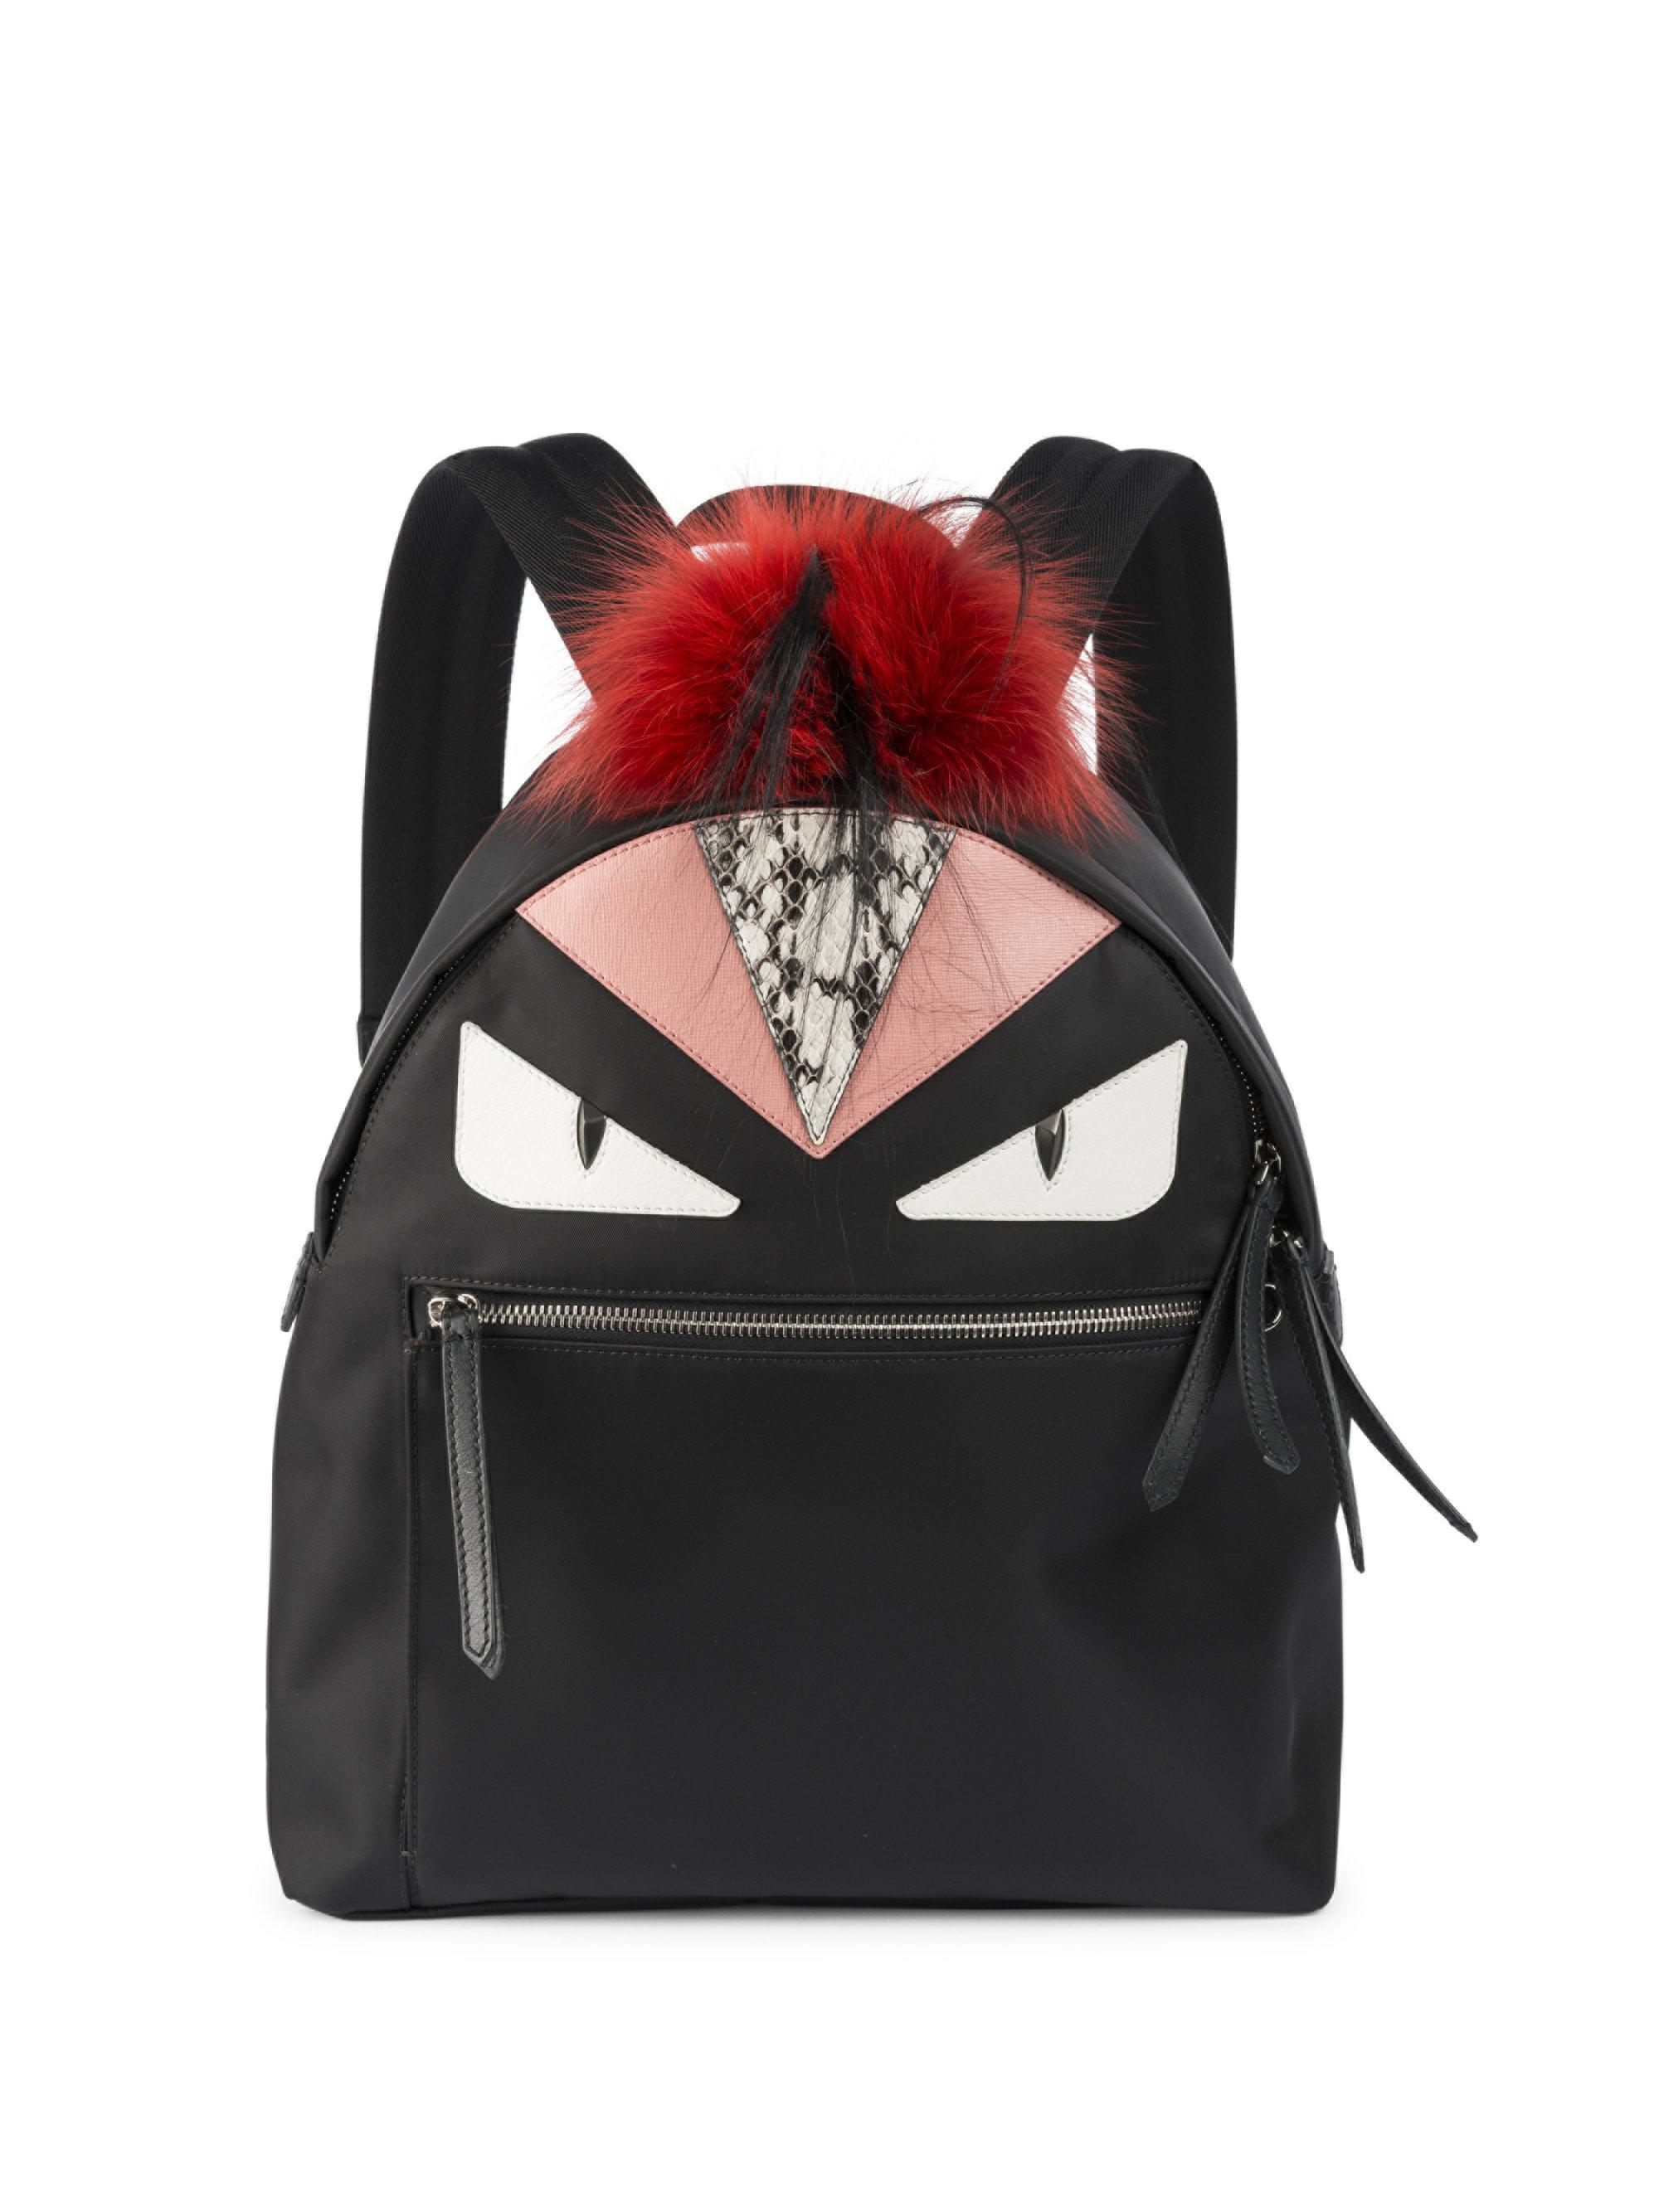 Lyst - Fendi Mini Bag Bugs Backpack in Black - Save 52% c7735f832a815